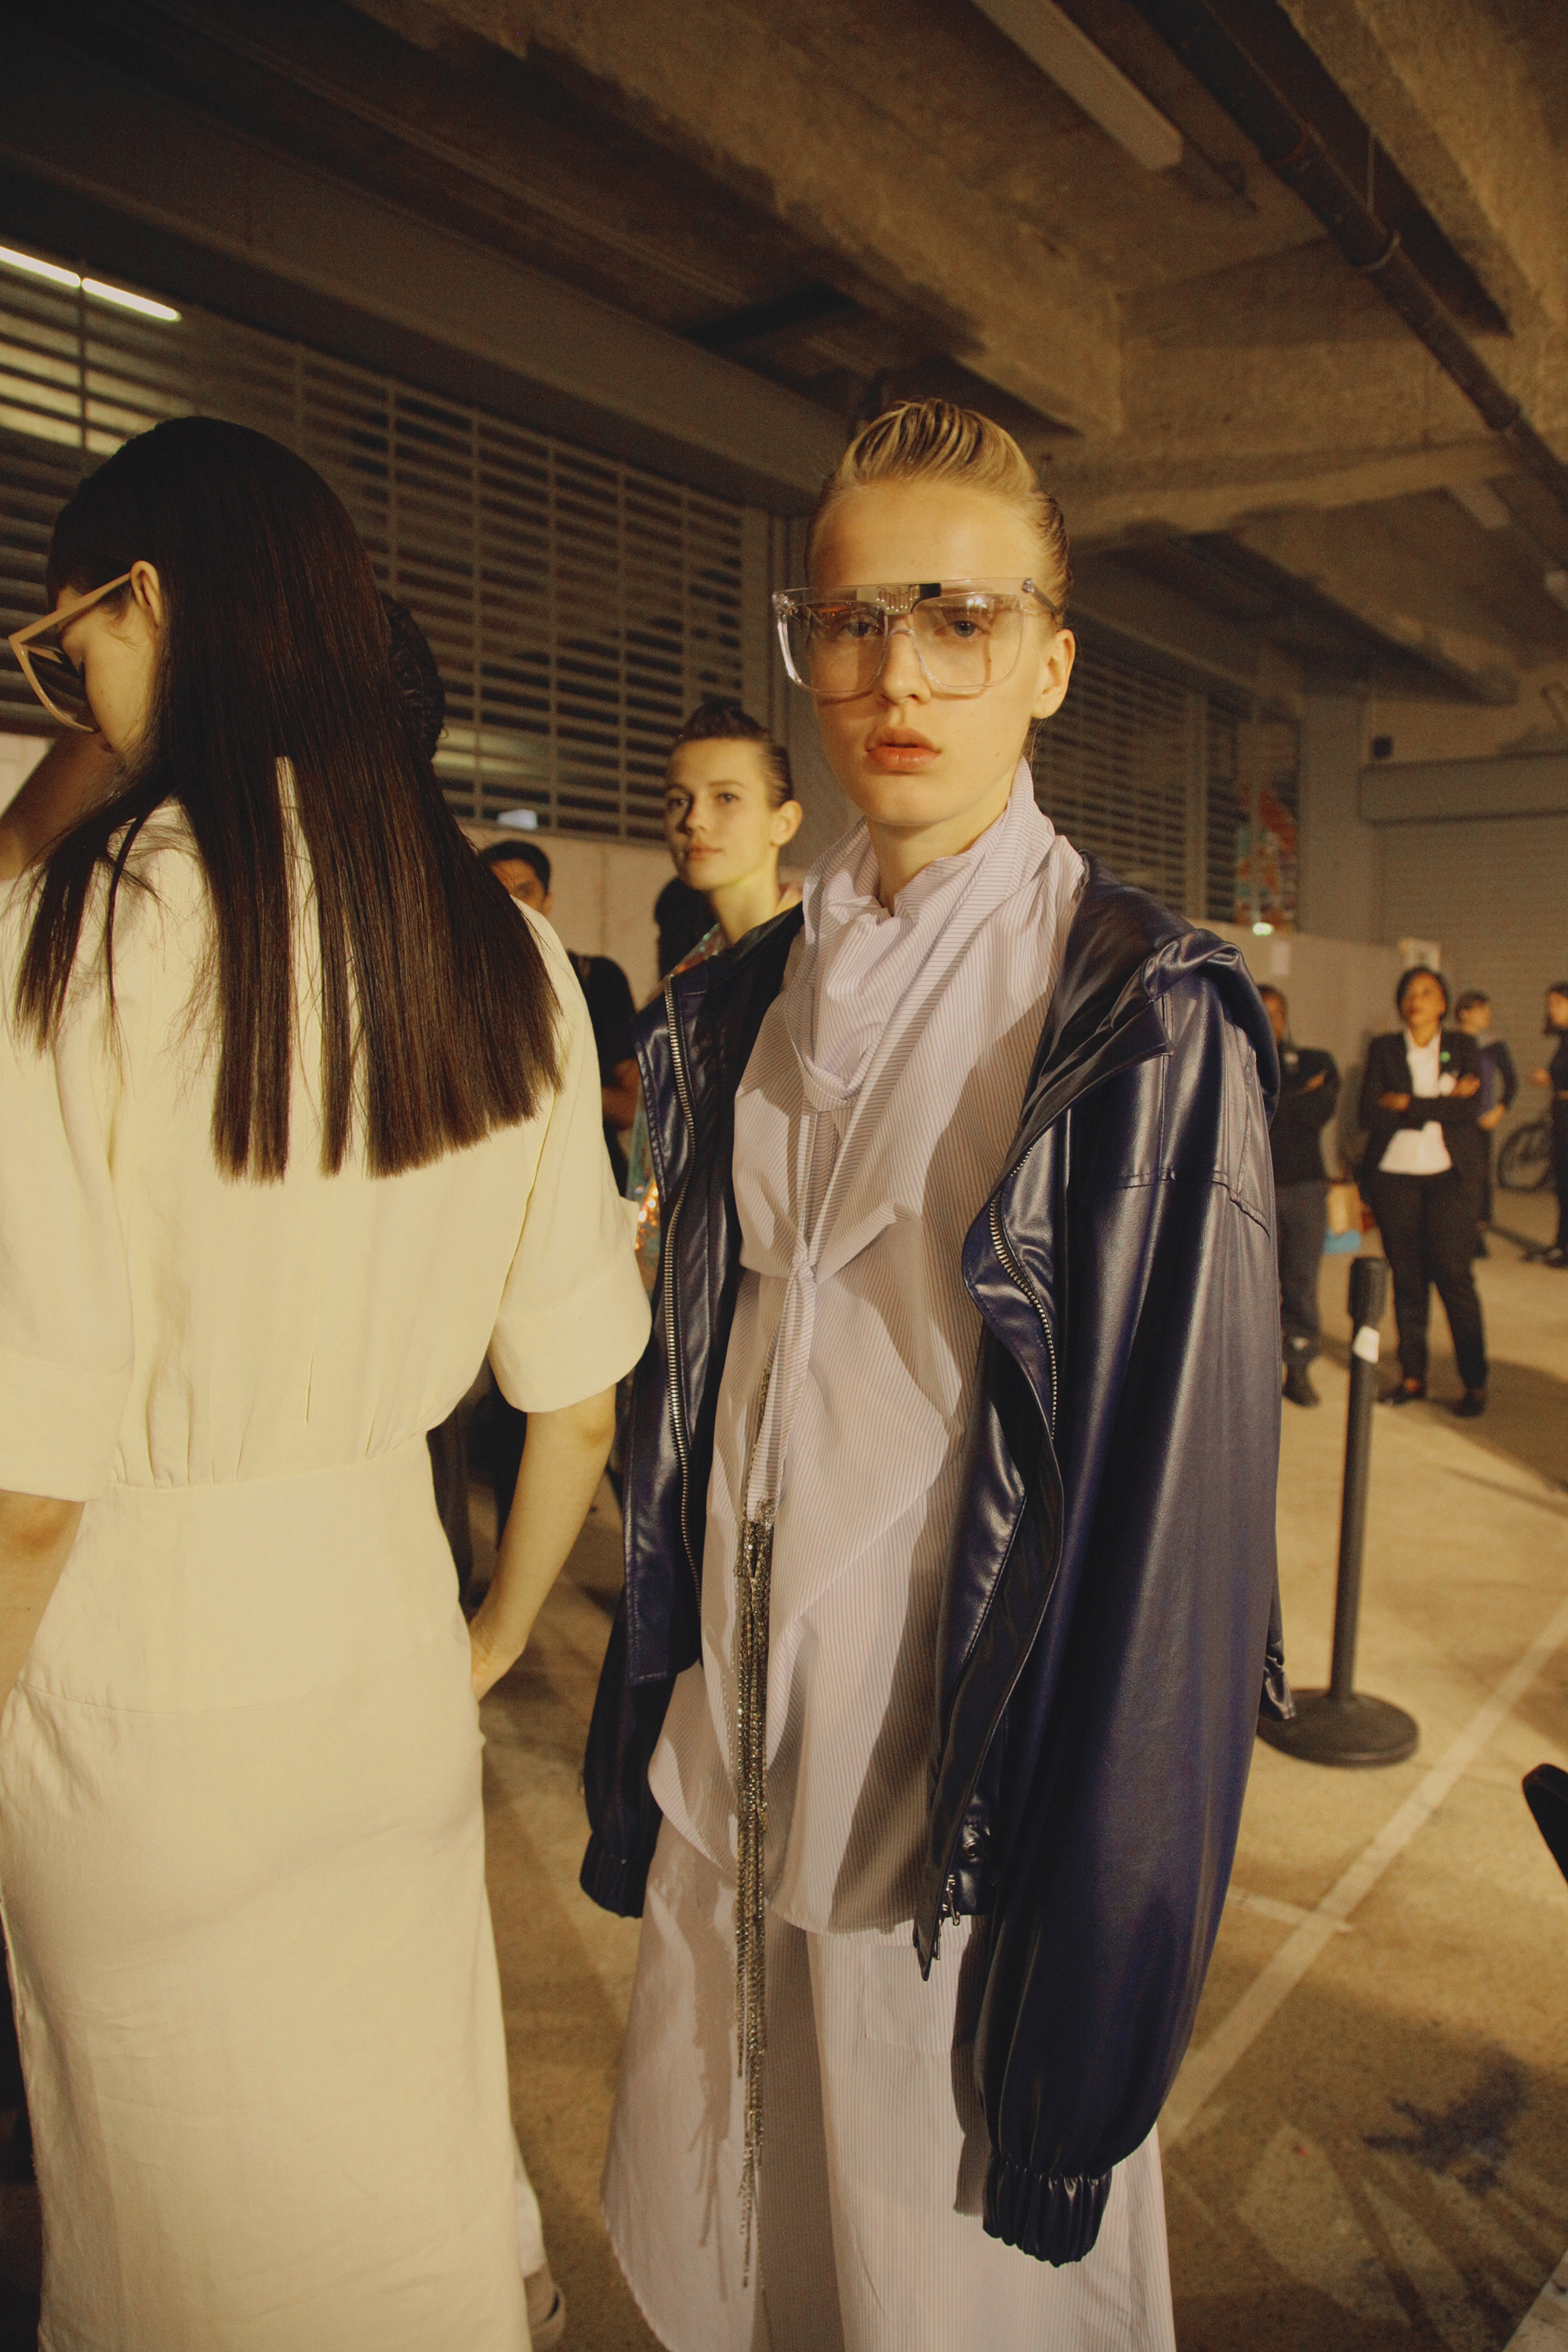 BACKSTAGE AT WANDA NYLON SPRING-SUMMER 2017 PARIS